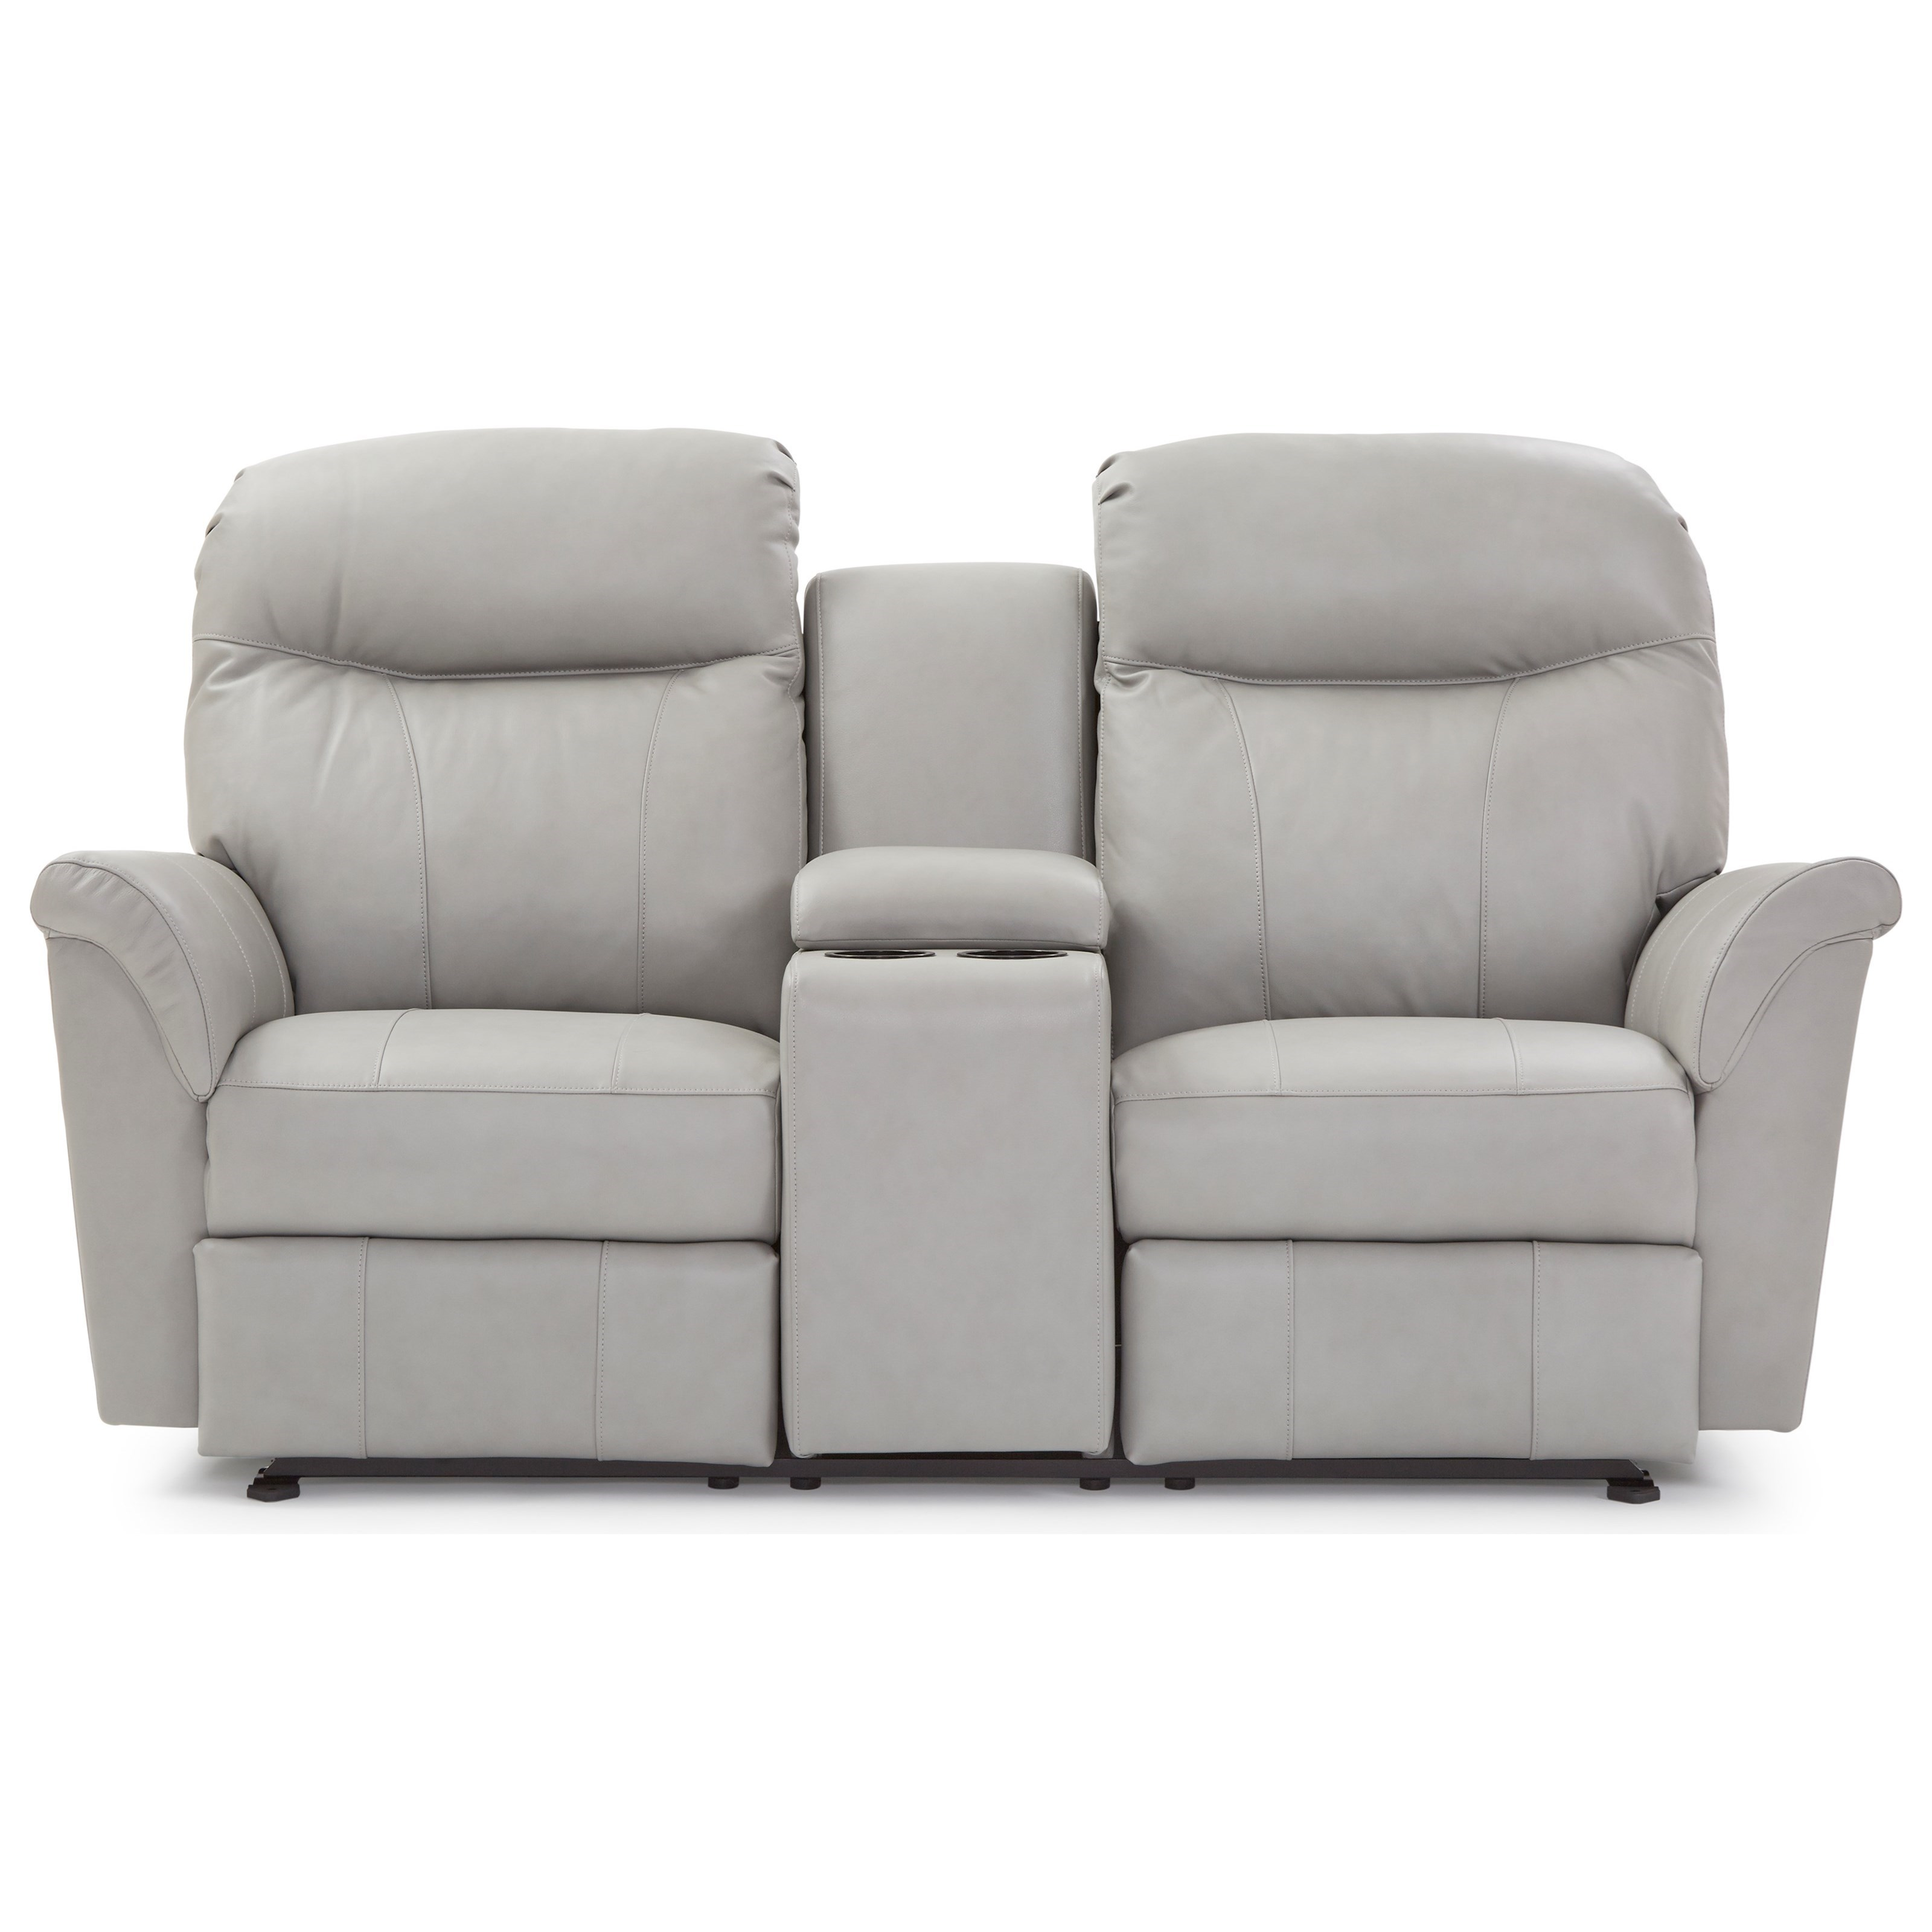 Caitlin Reclining Power HR Wall Saver Console Love by Best Home Furnishings at Best Home Furnishings